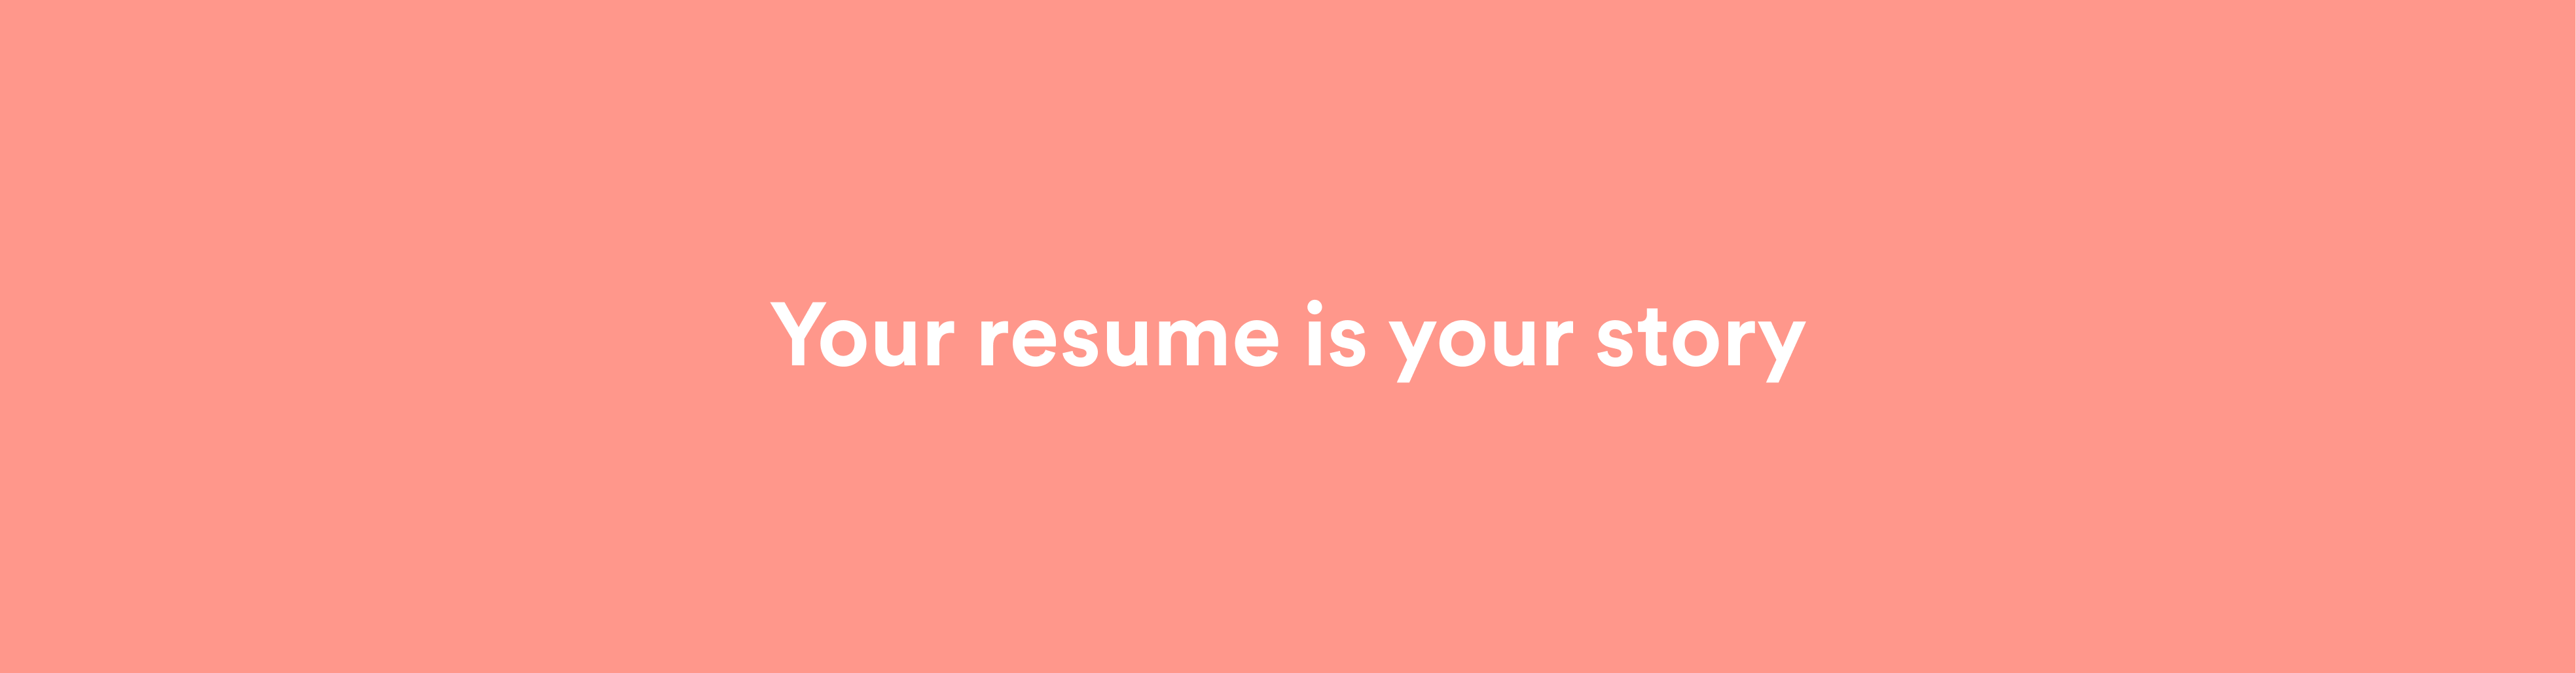 Your resume is your story